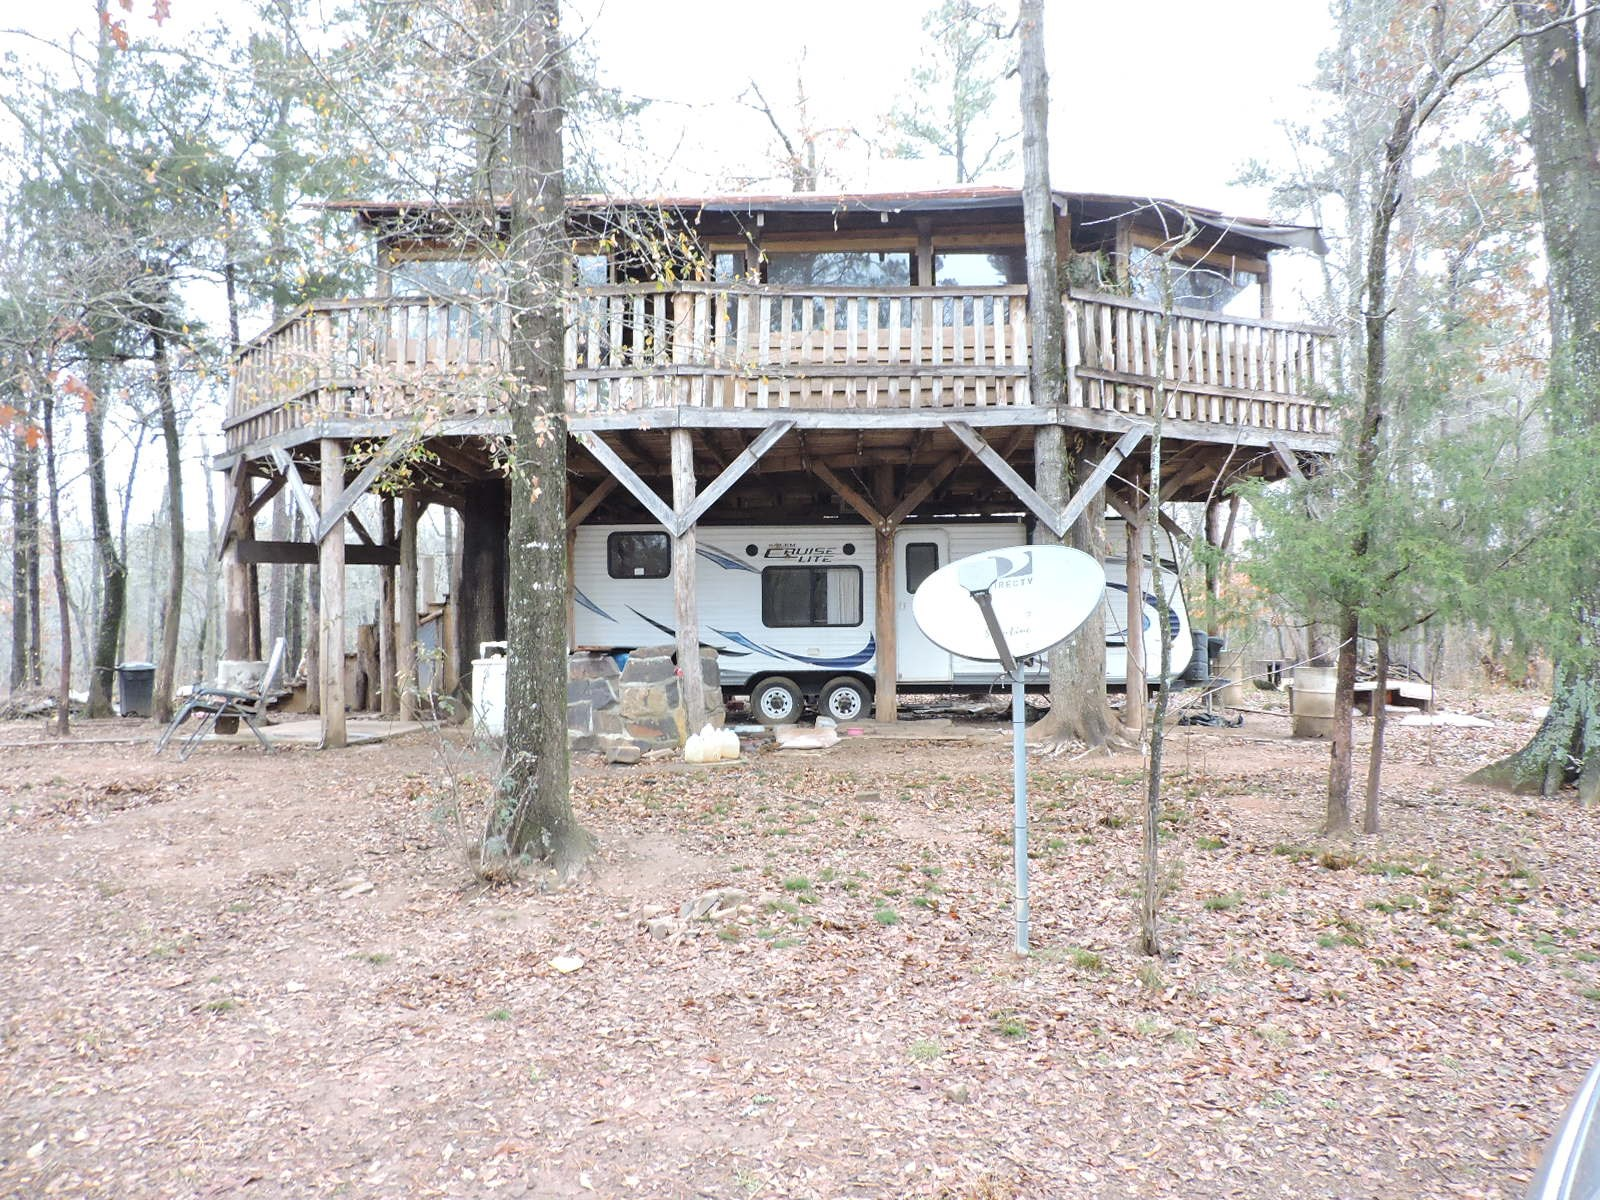 13.69 Acres of Manicured Parklike Acres, Cabin, Tree House